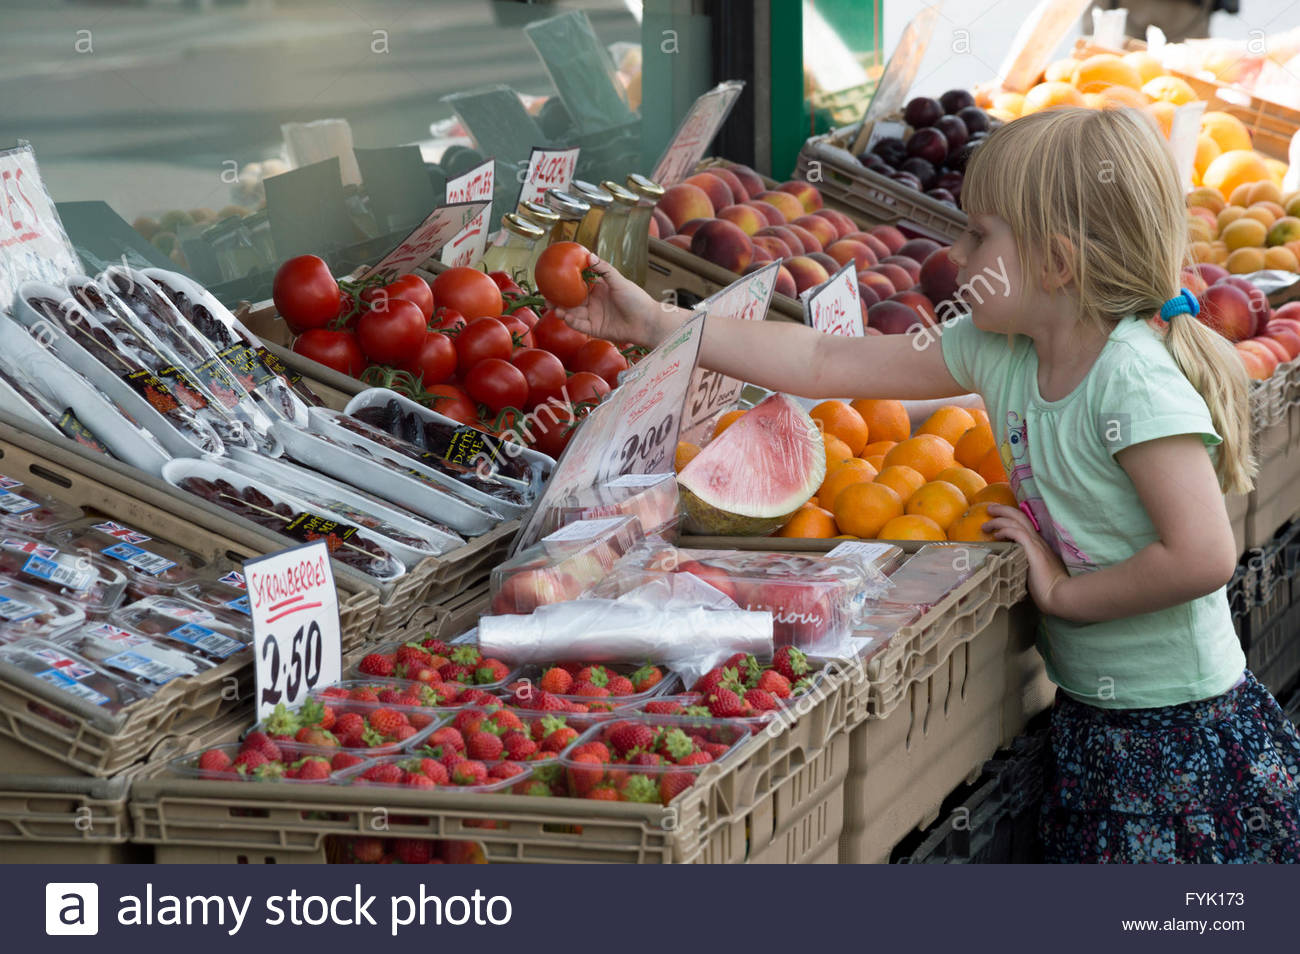 A little girl picks a tomato from the display outside a shop, Broadstairs, Kent - Stock Image